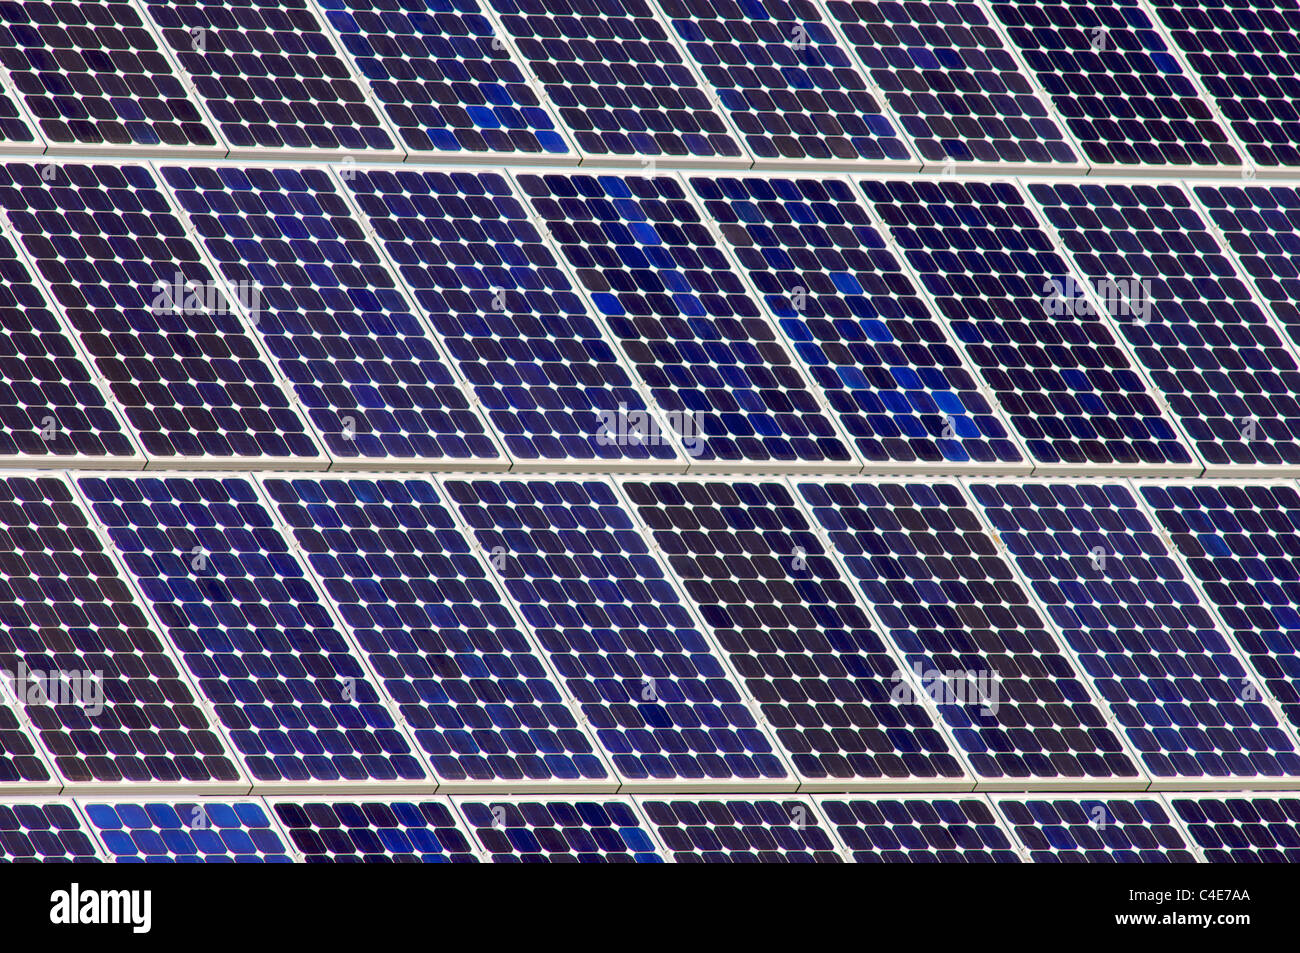 detail of a photovoltaic panel for electricity production - Stock Image